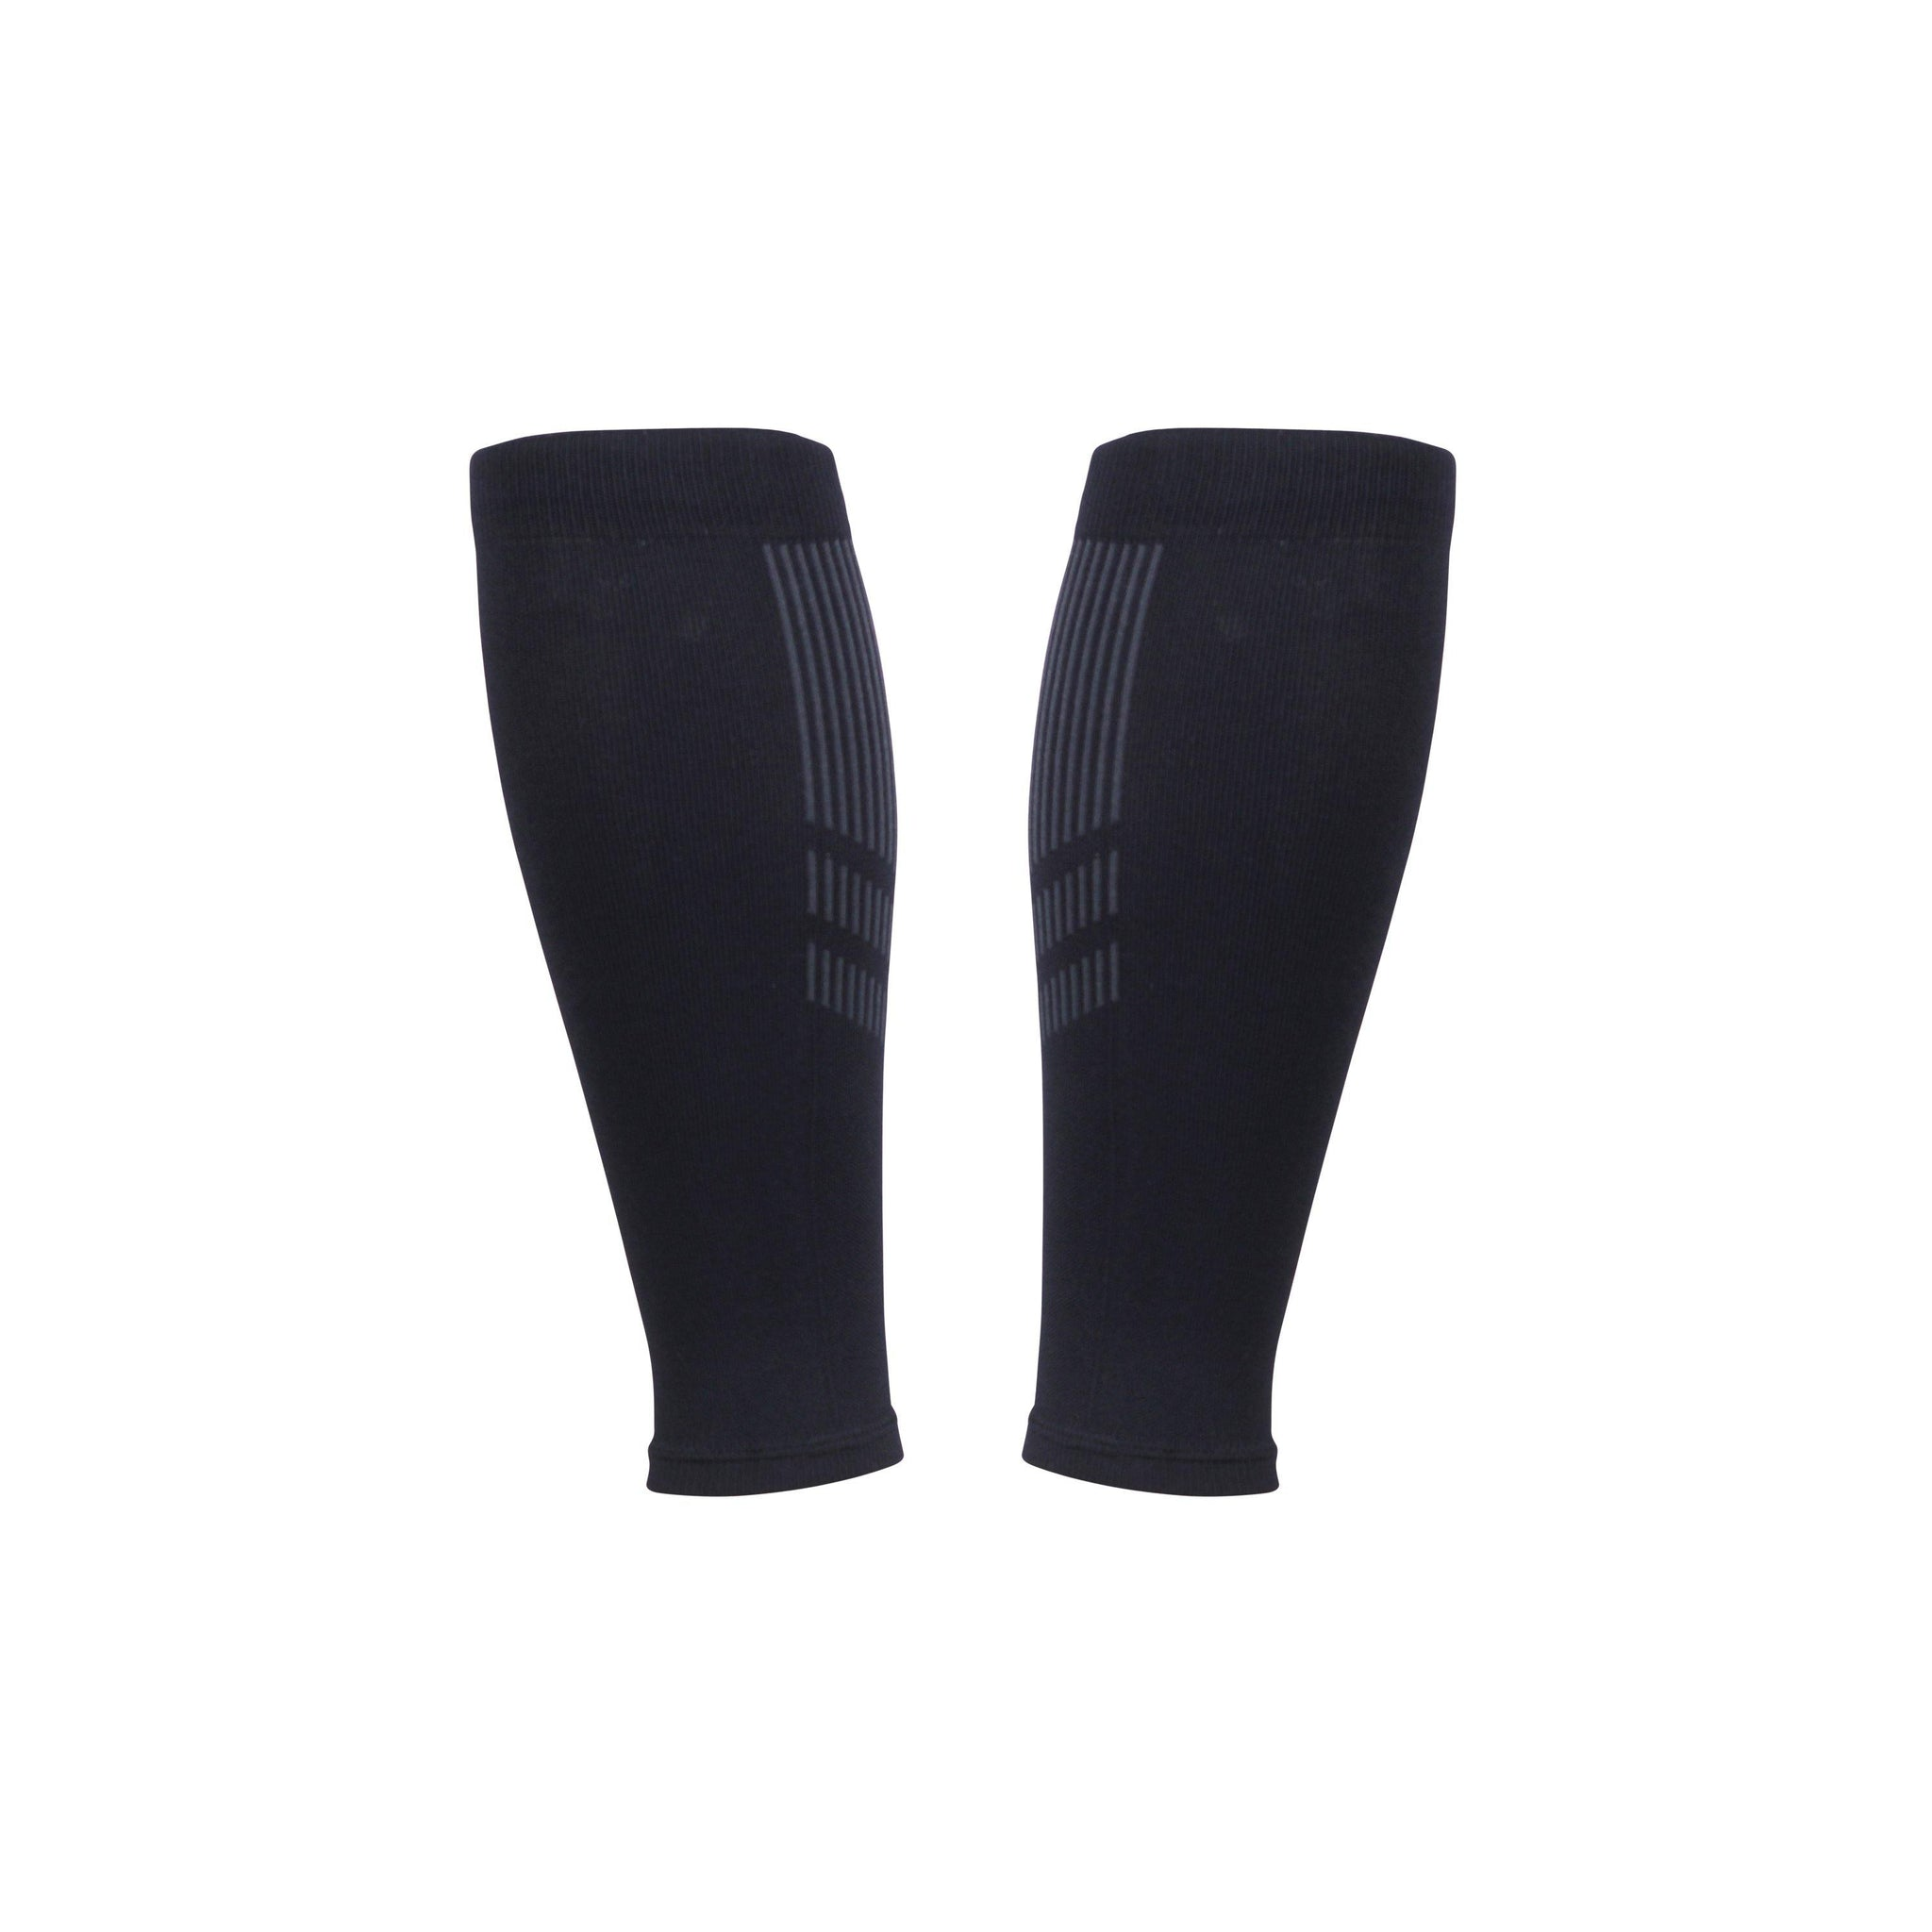 Run Lite Compression Calf Sleeves - Black